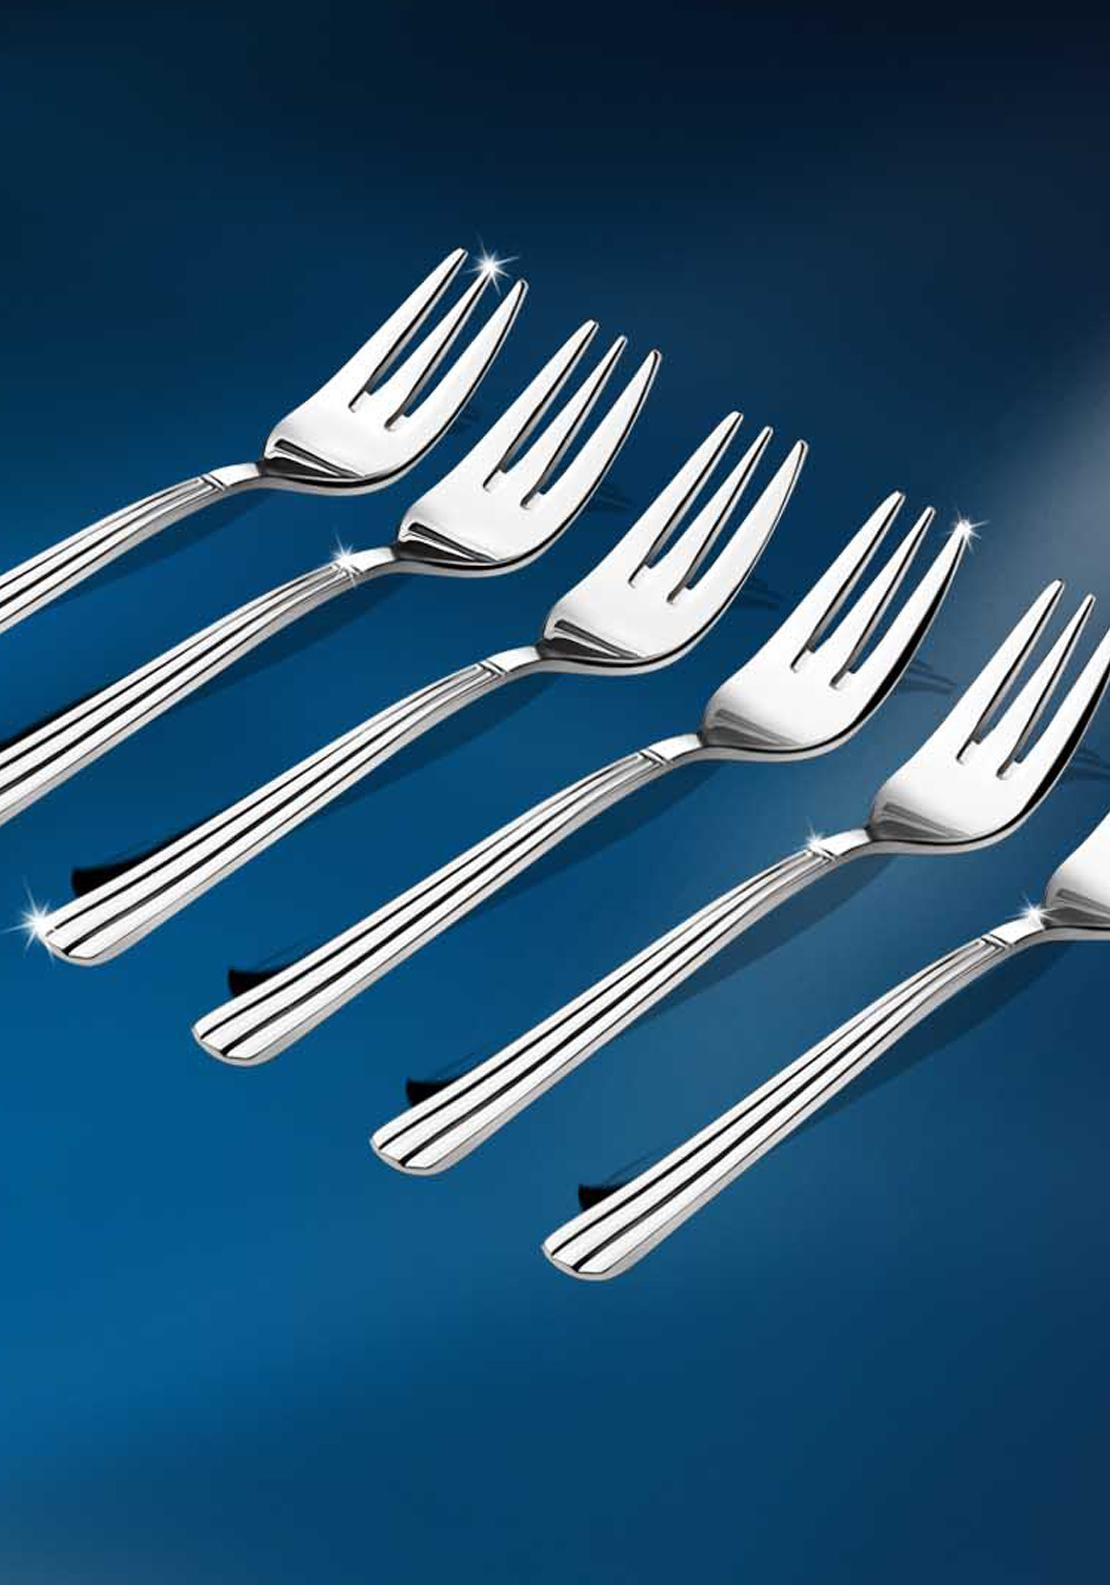 Newbridge Nova Stainless Steel Pastry Fork Set, Set of 6